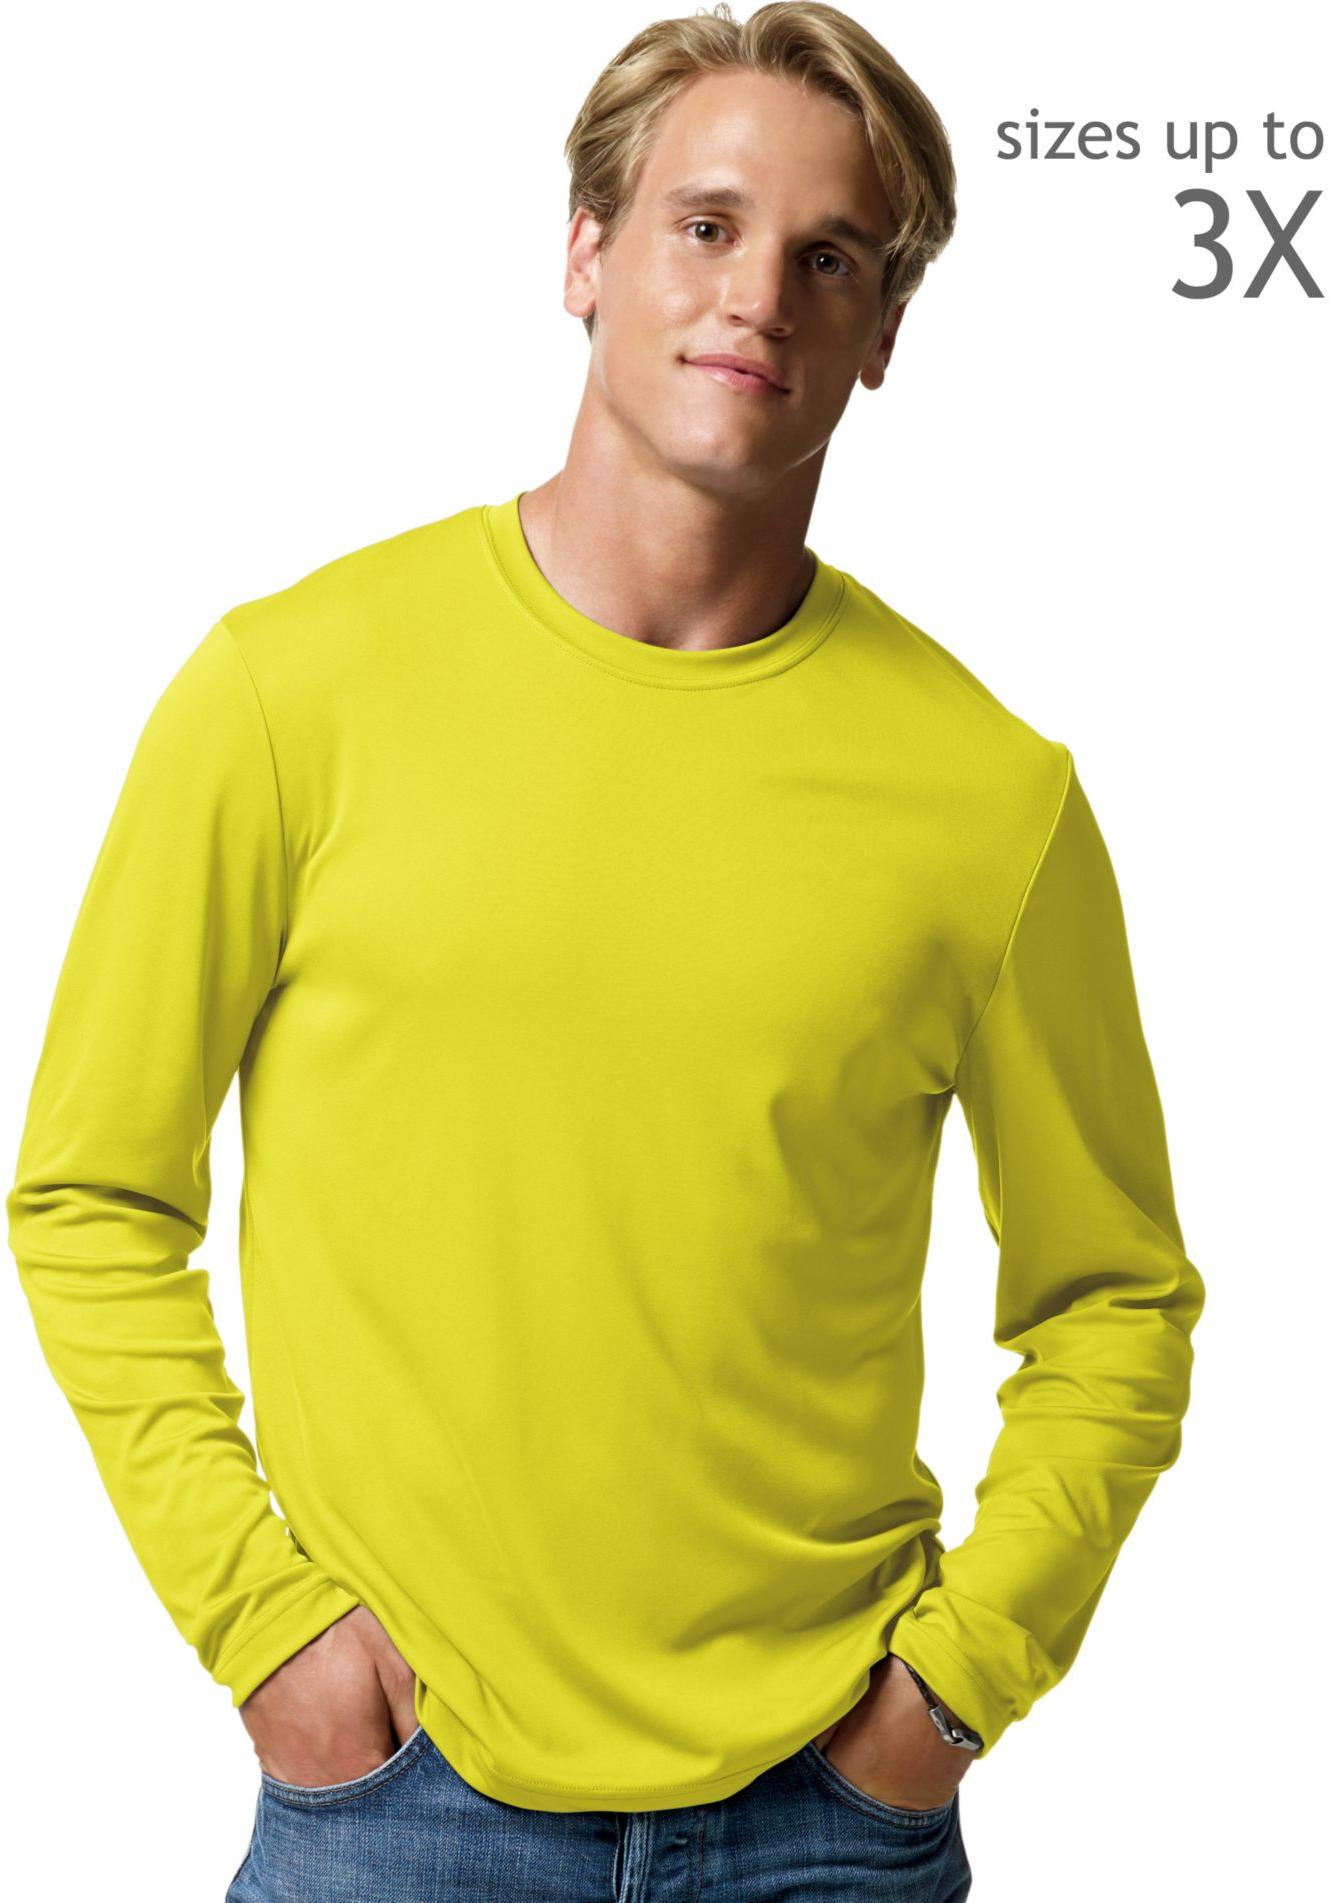 Mens Long Sleeve Yellow T Shirt | Is Shirt